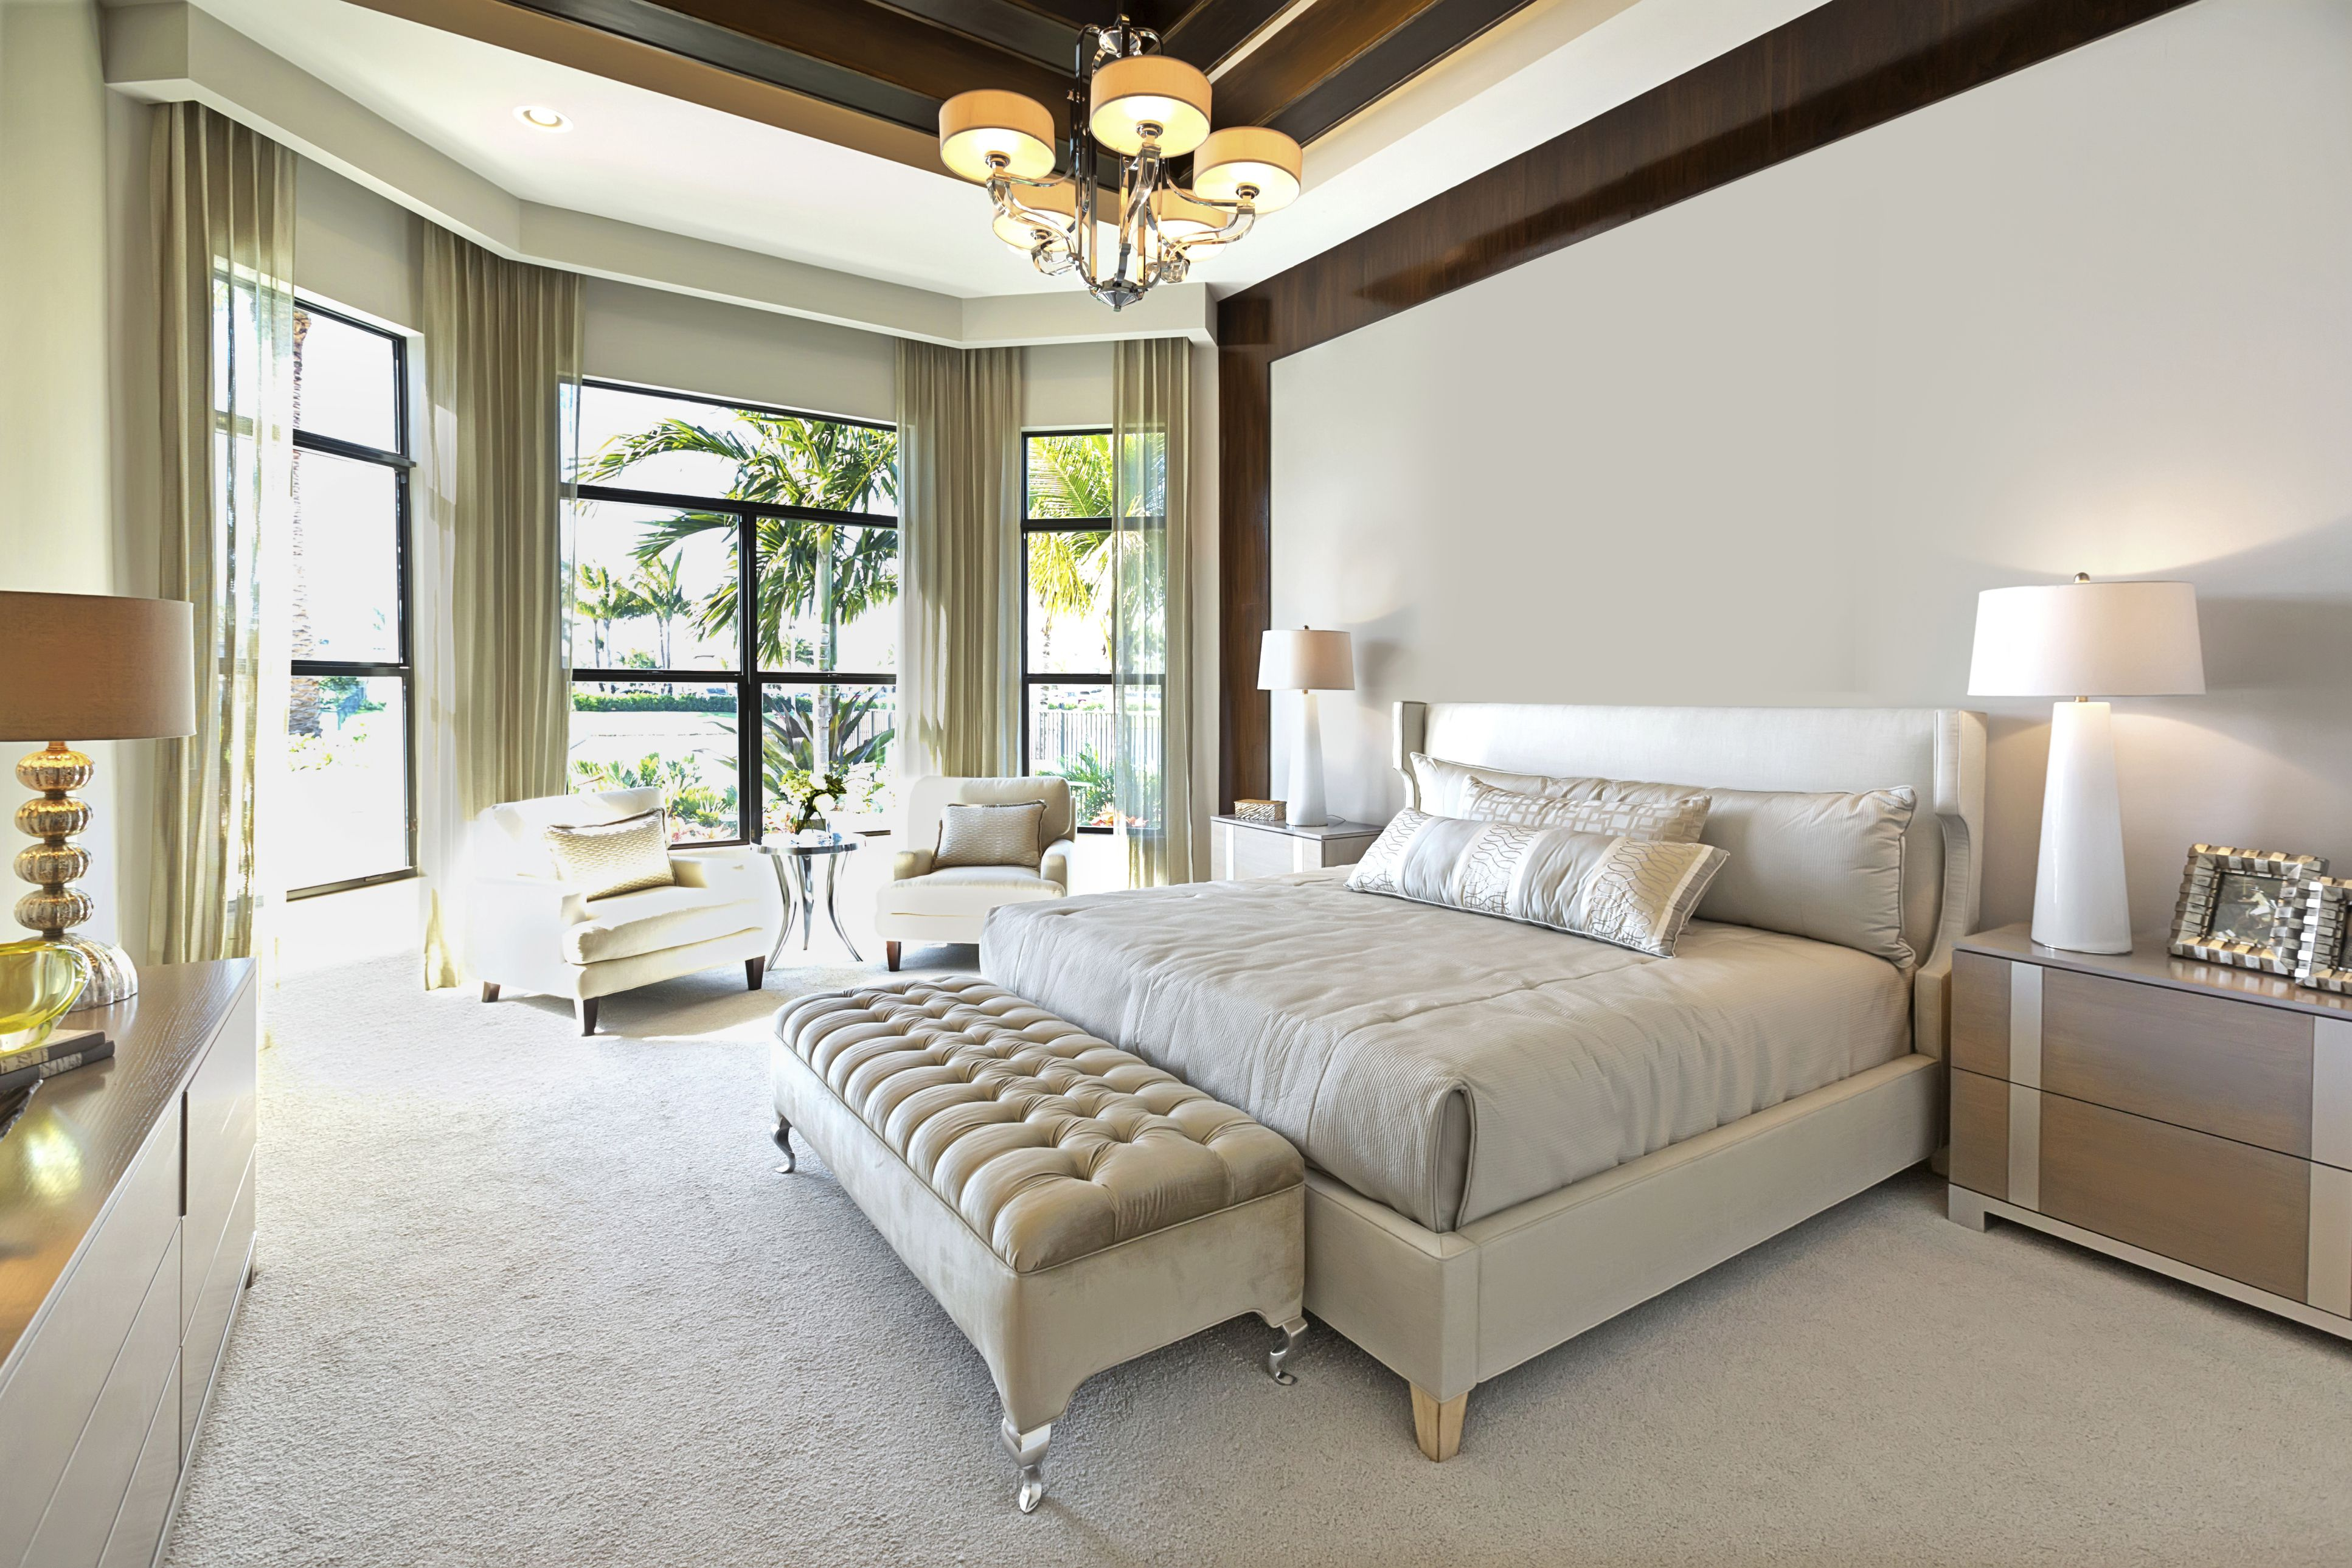 Why Carpet is Better Than Hardwood for Bedrooms